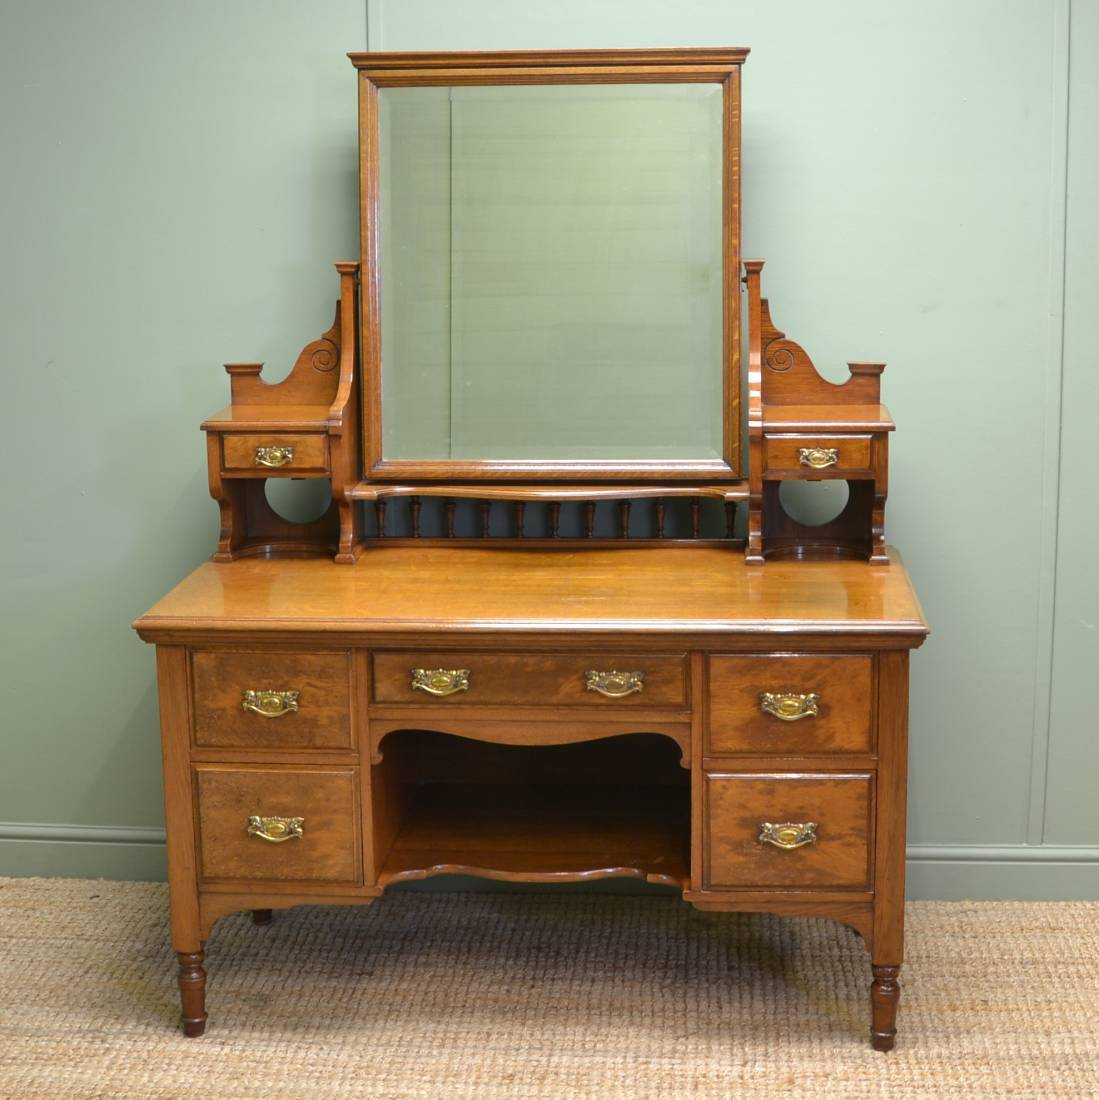 Victorian dressing table - Quality Solid Oak Victorian Antique Dressing Table